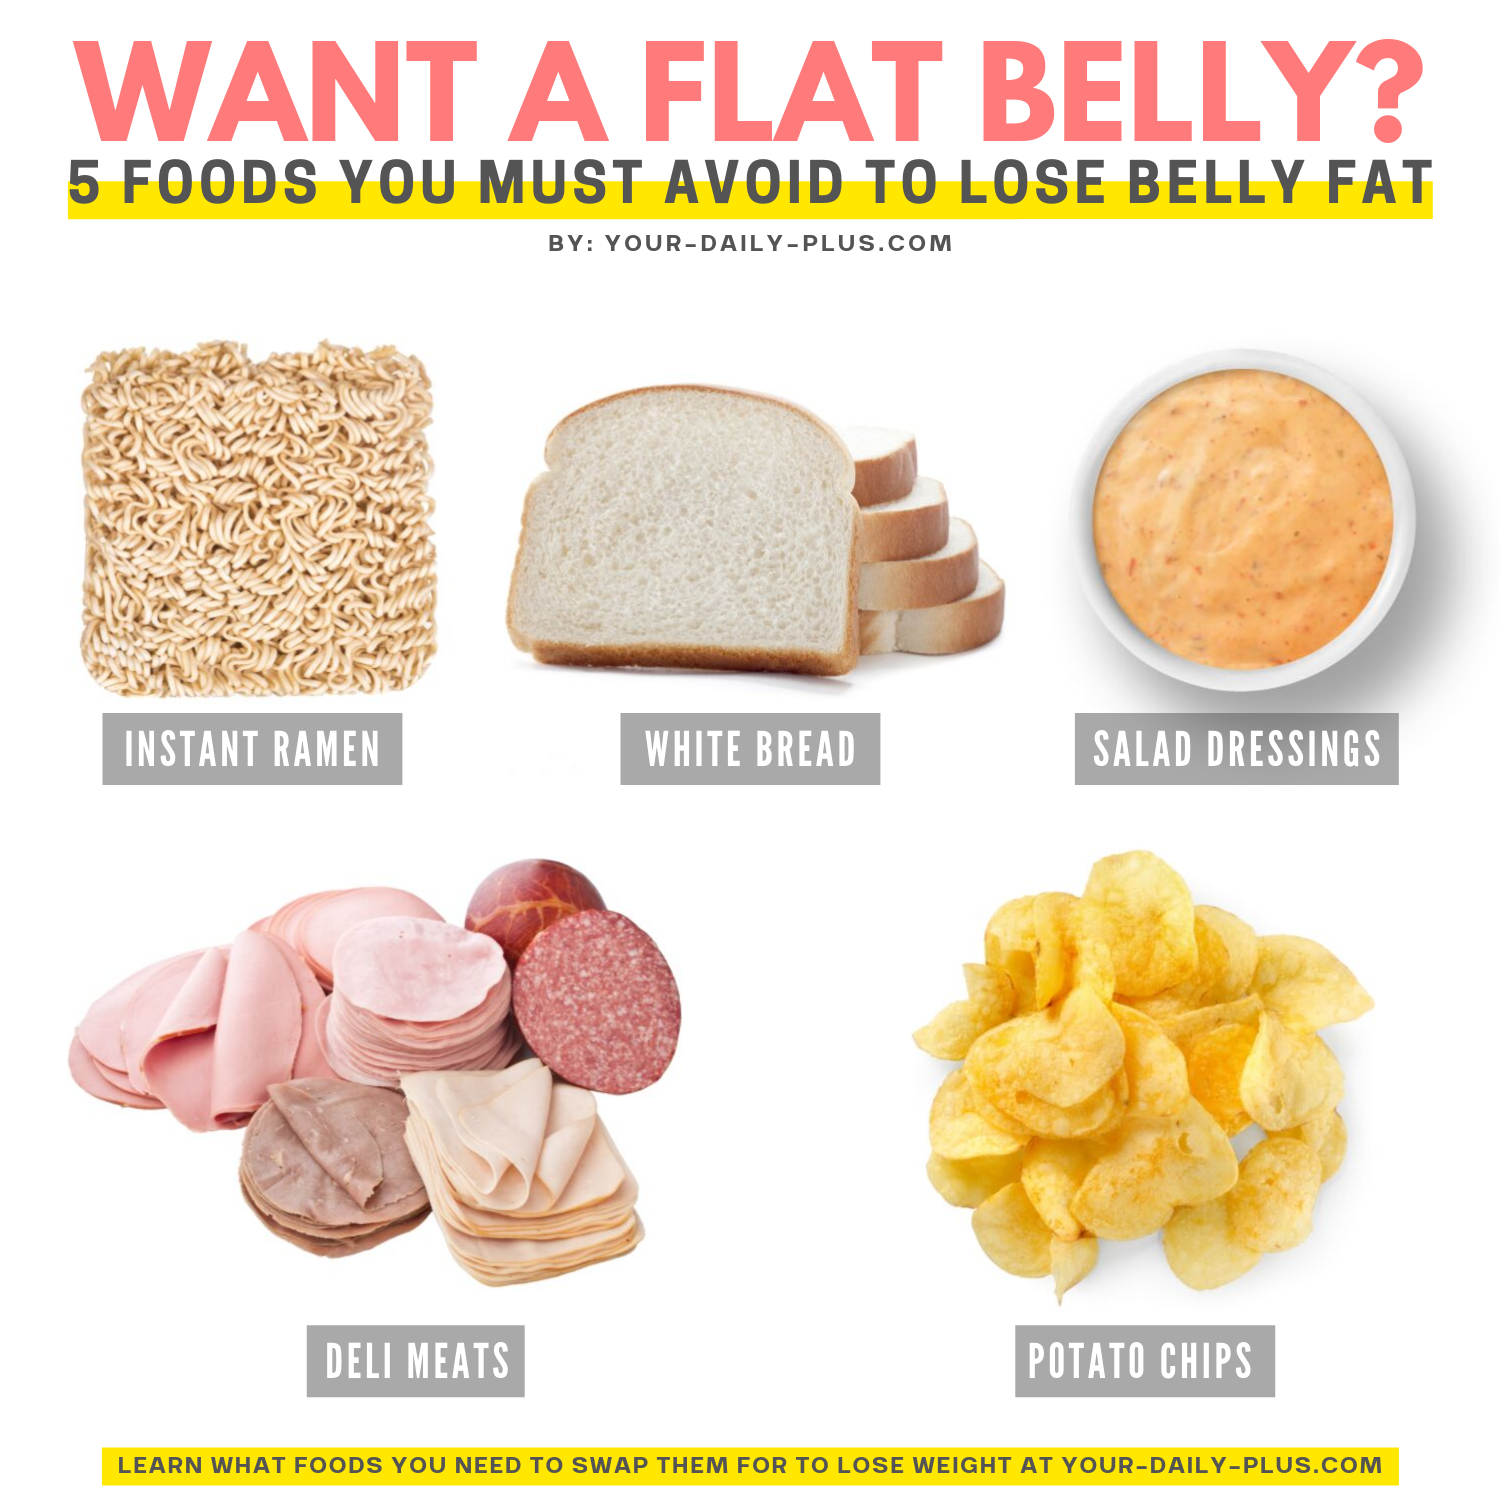 For you girls that love eating, as I do, it may be hard to shed the weight. However, if you swap out these five processed foods for healthier options, you can start looking and feeling great with your new weight loss. #weightloss #flatbelly #healthyeating